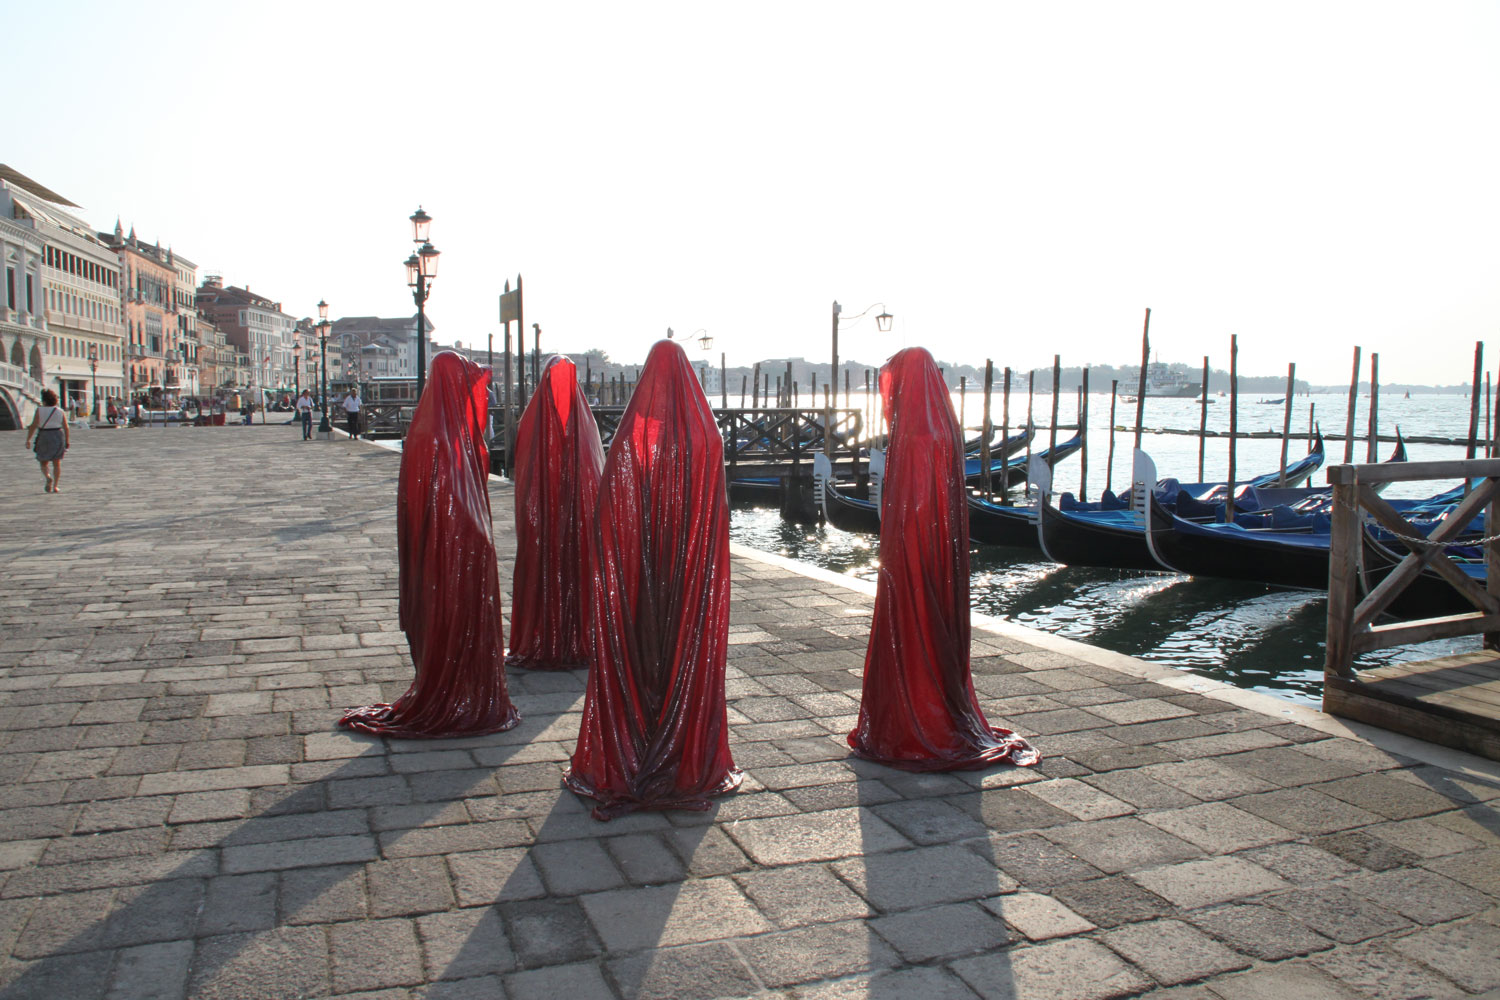 public art biennial festival show exhibition in Venice by Manfred Kielnhofer contemporary art design architecture sculpture theatre 4294